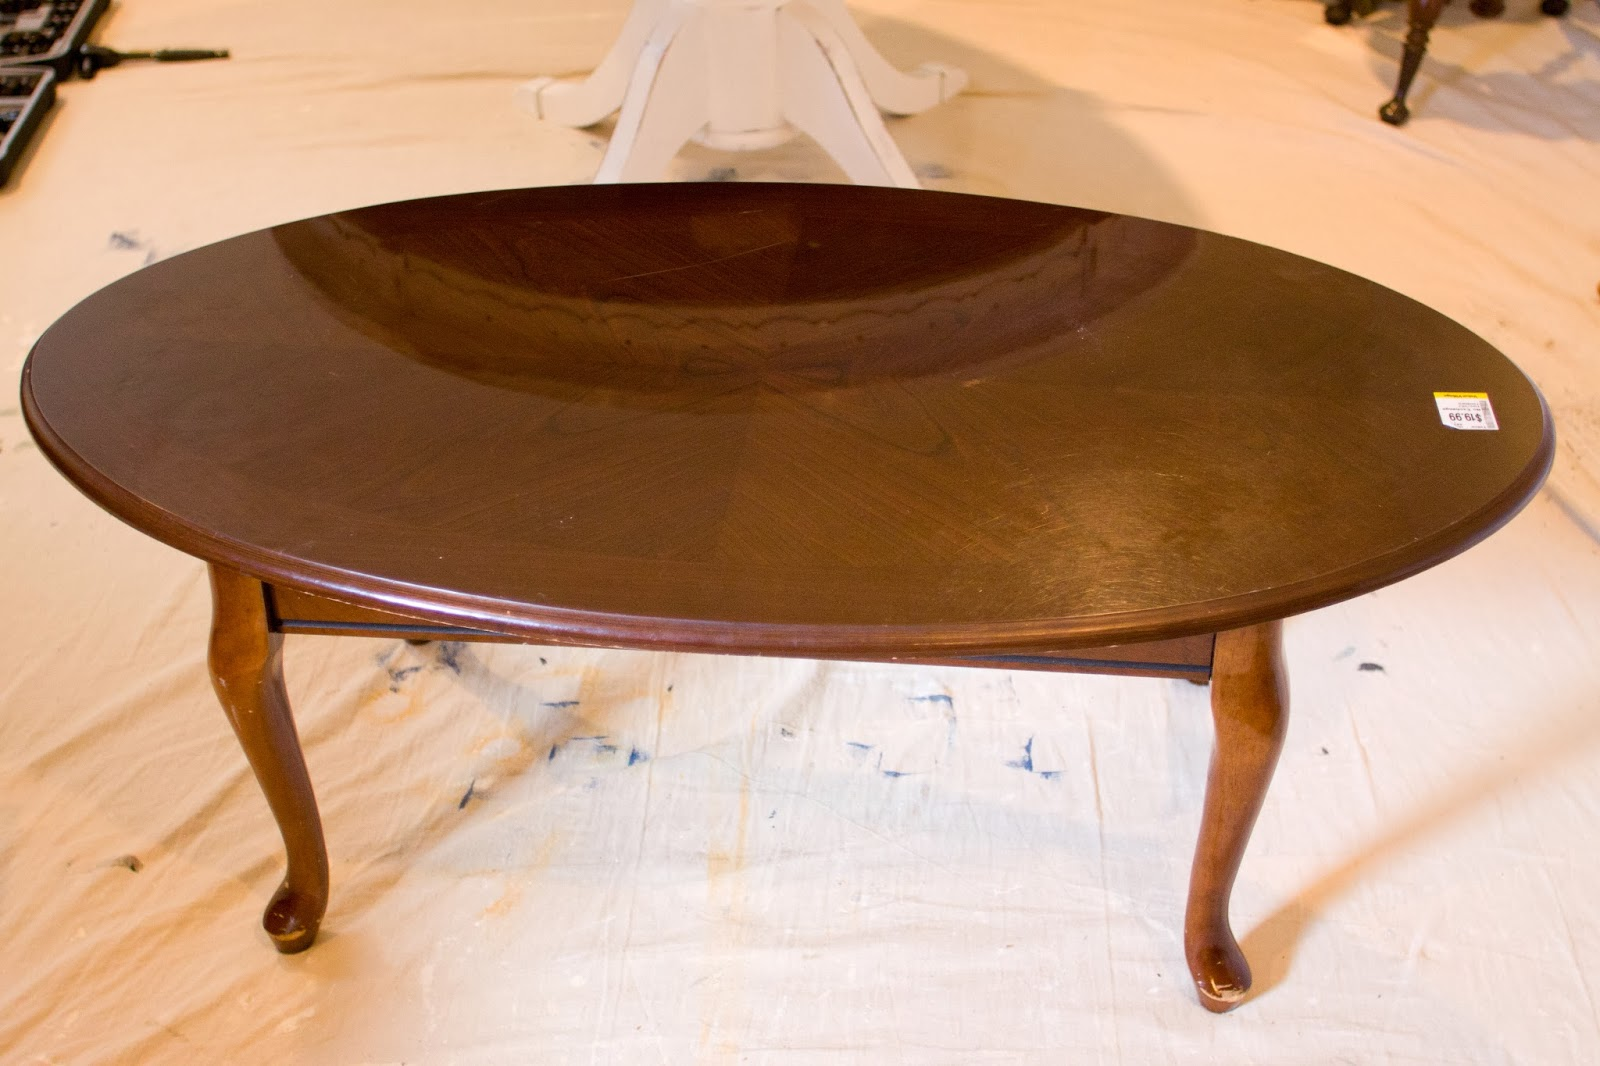 Sweet Tree Furniture Oval Coffee Table